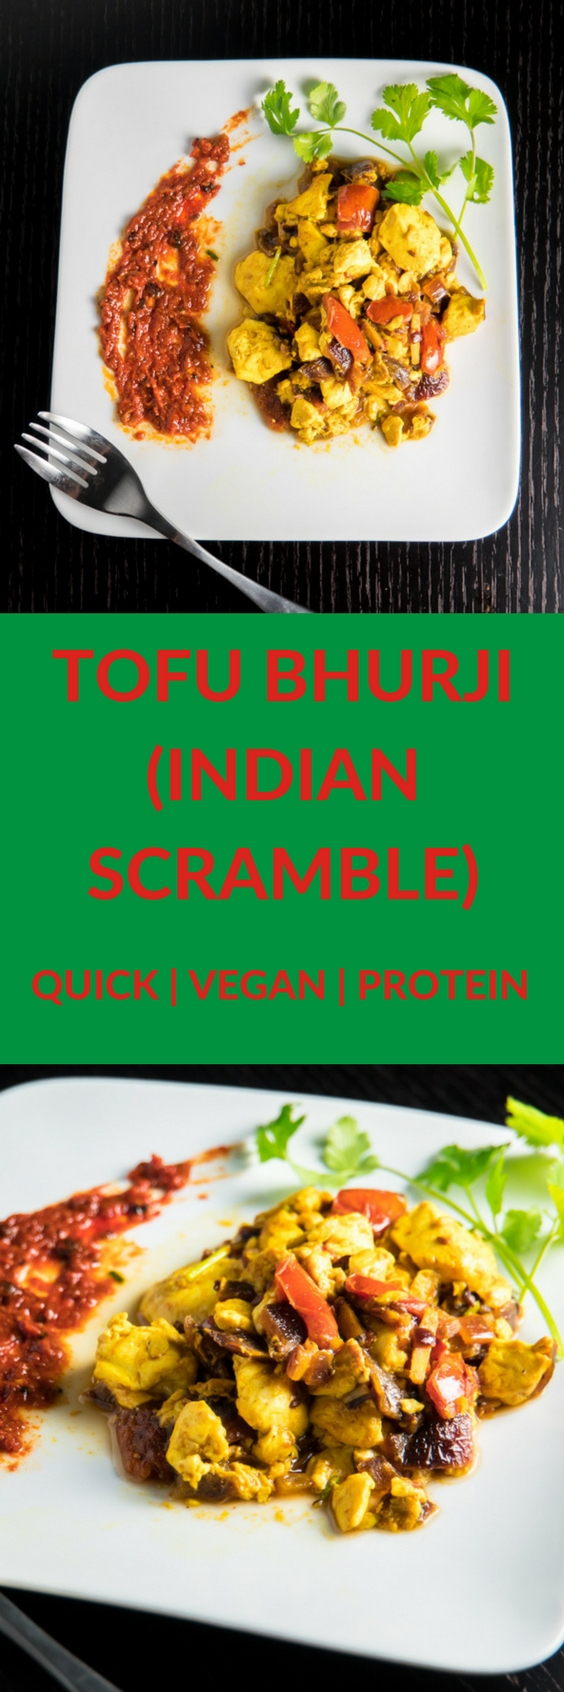 Tofu Bhurji - Healthy and Easy Indian scramble recipe